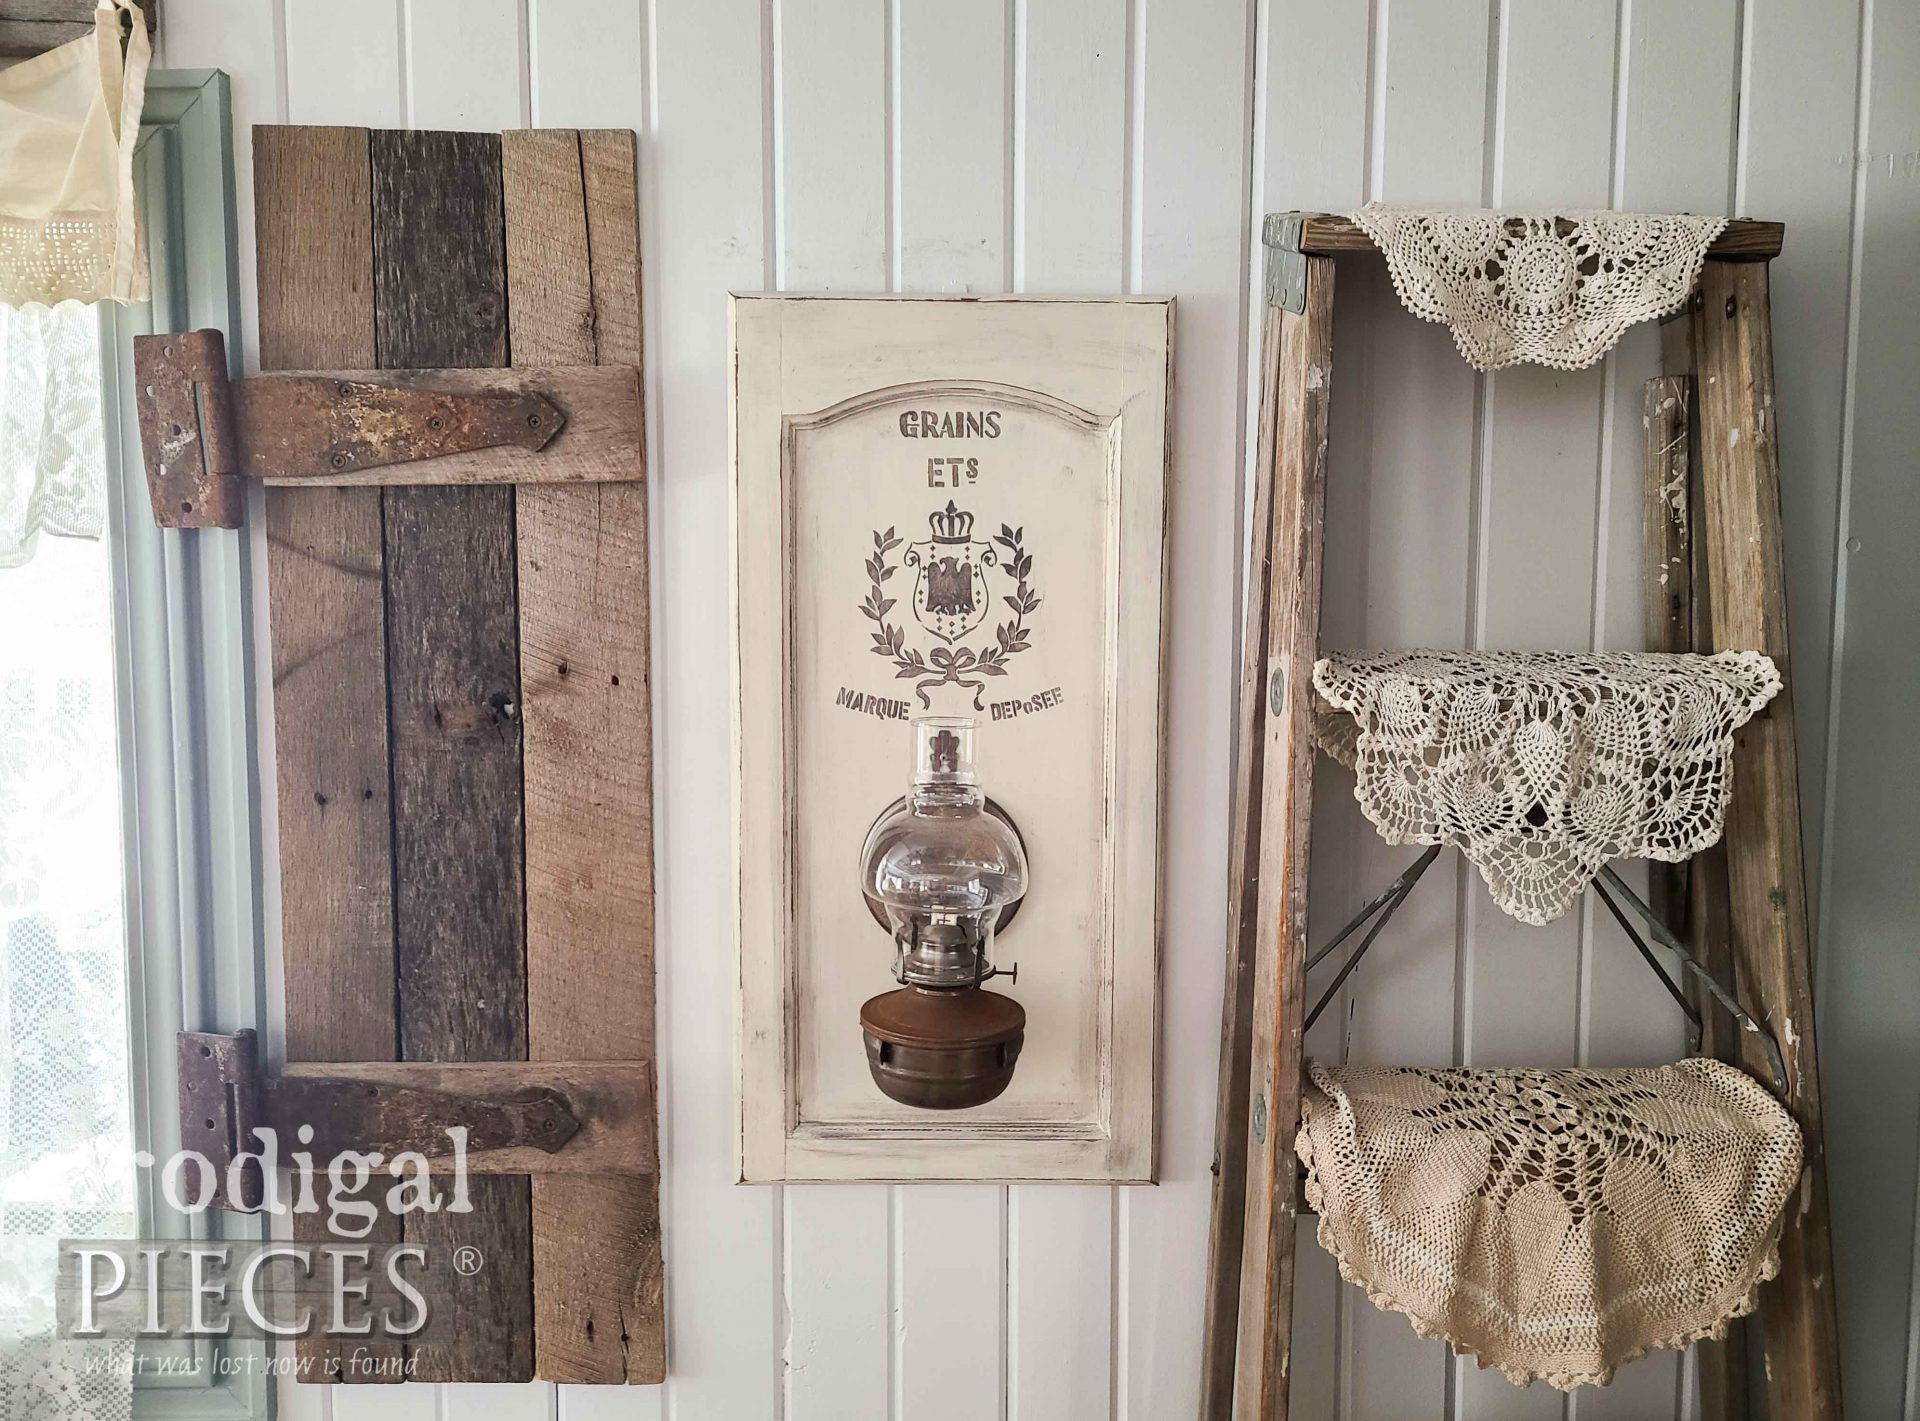 Farmhouse Oil Lamp ~ Chic Decor from Salvaged Finds by Larissa of Prodigal Pieces | prodigalpieces.com #prodigalpieces #farmhouse #home #homedecor